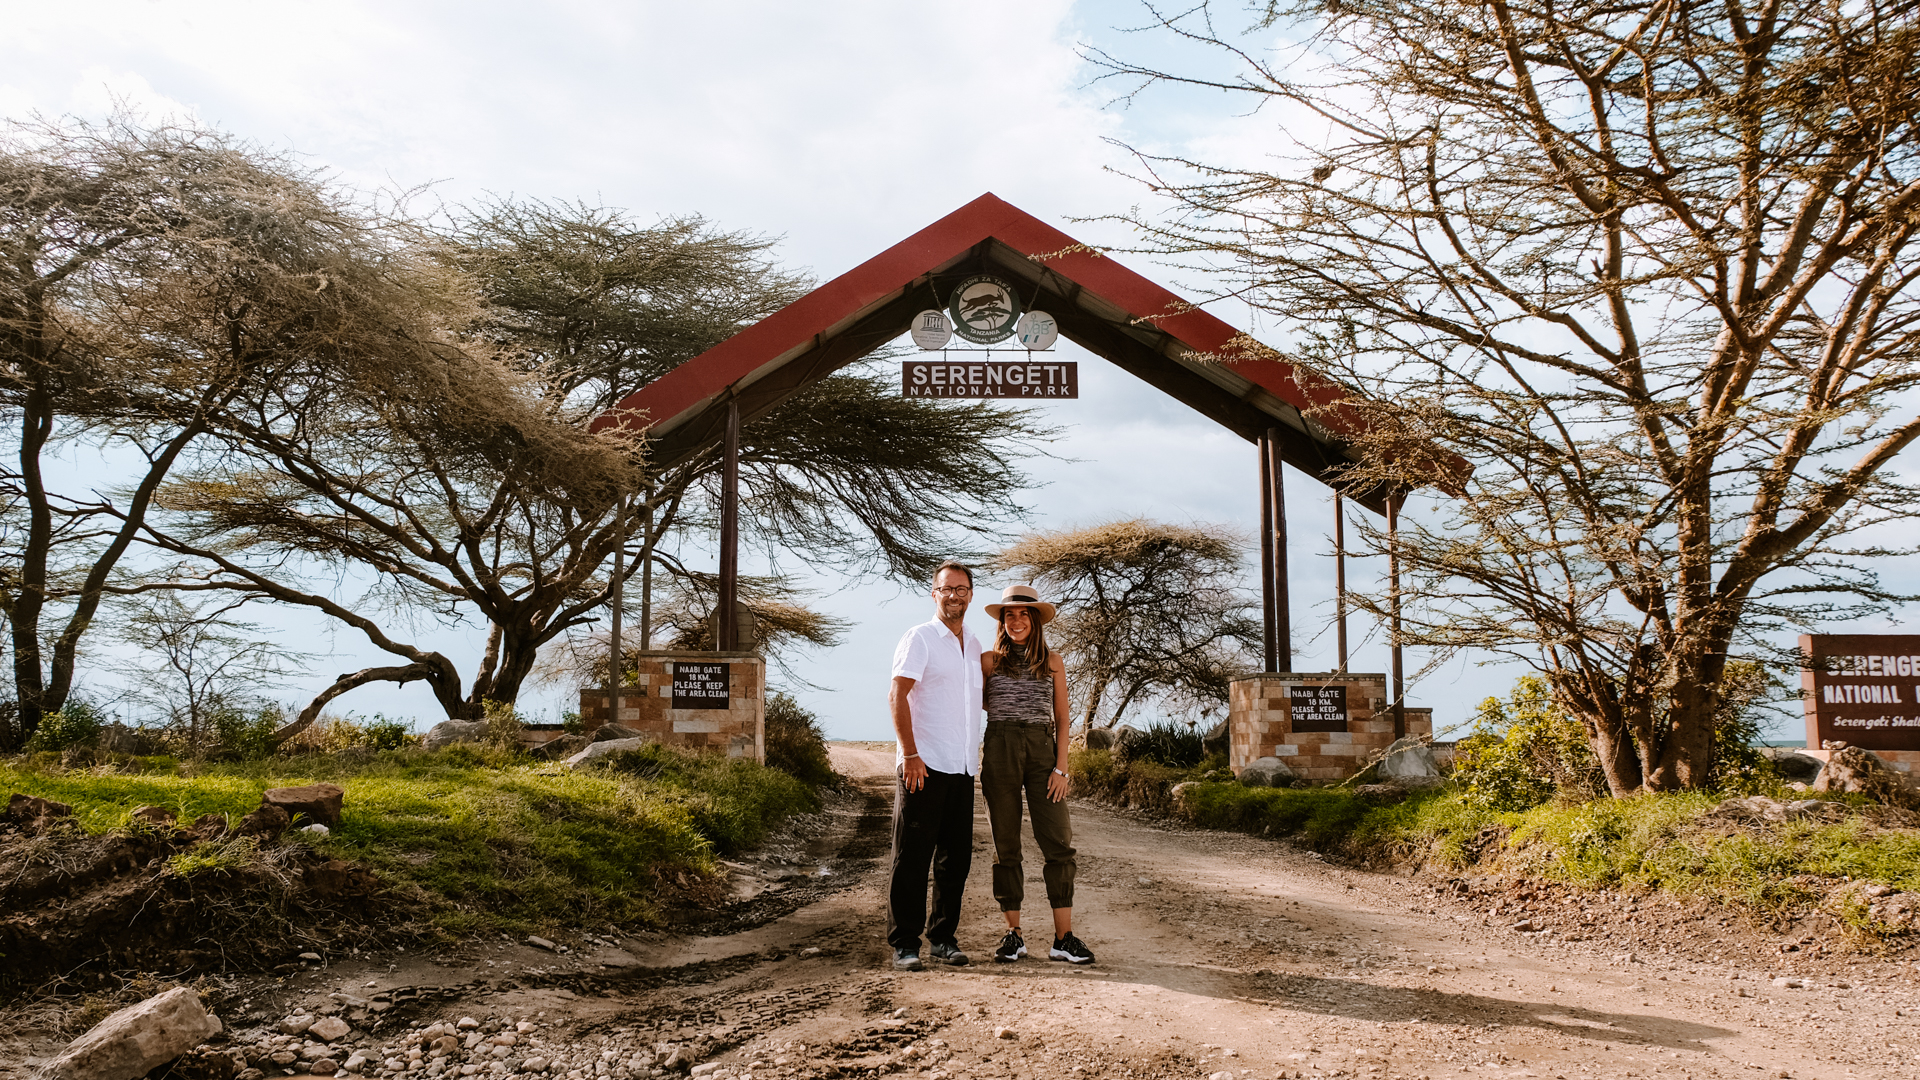 Standing at the gate of the Serengeti National Park in the middle of the savanna